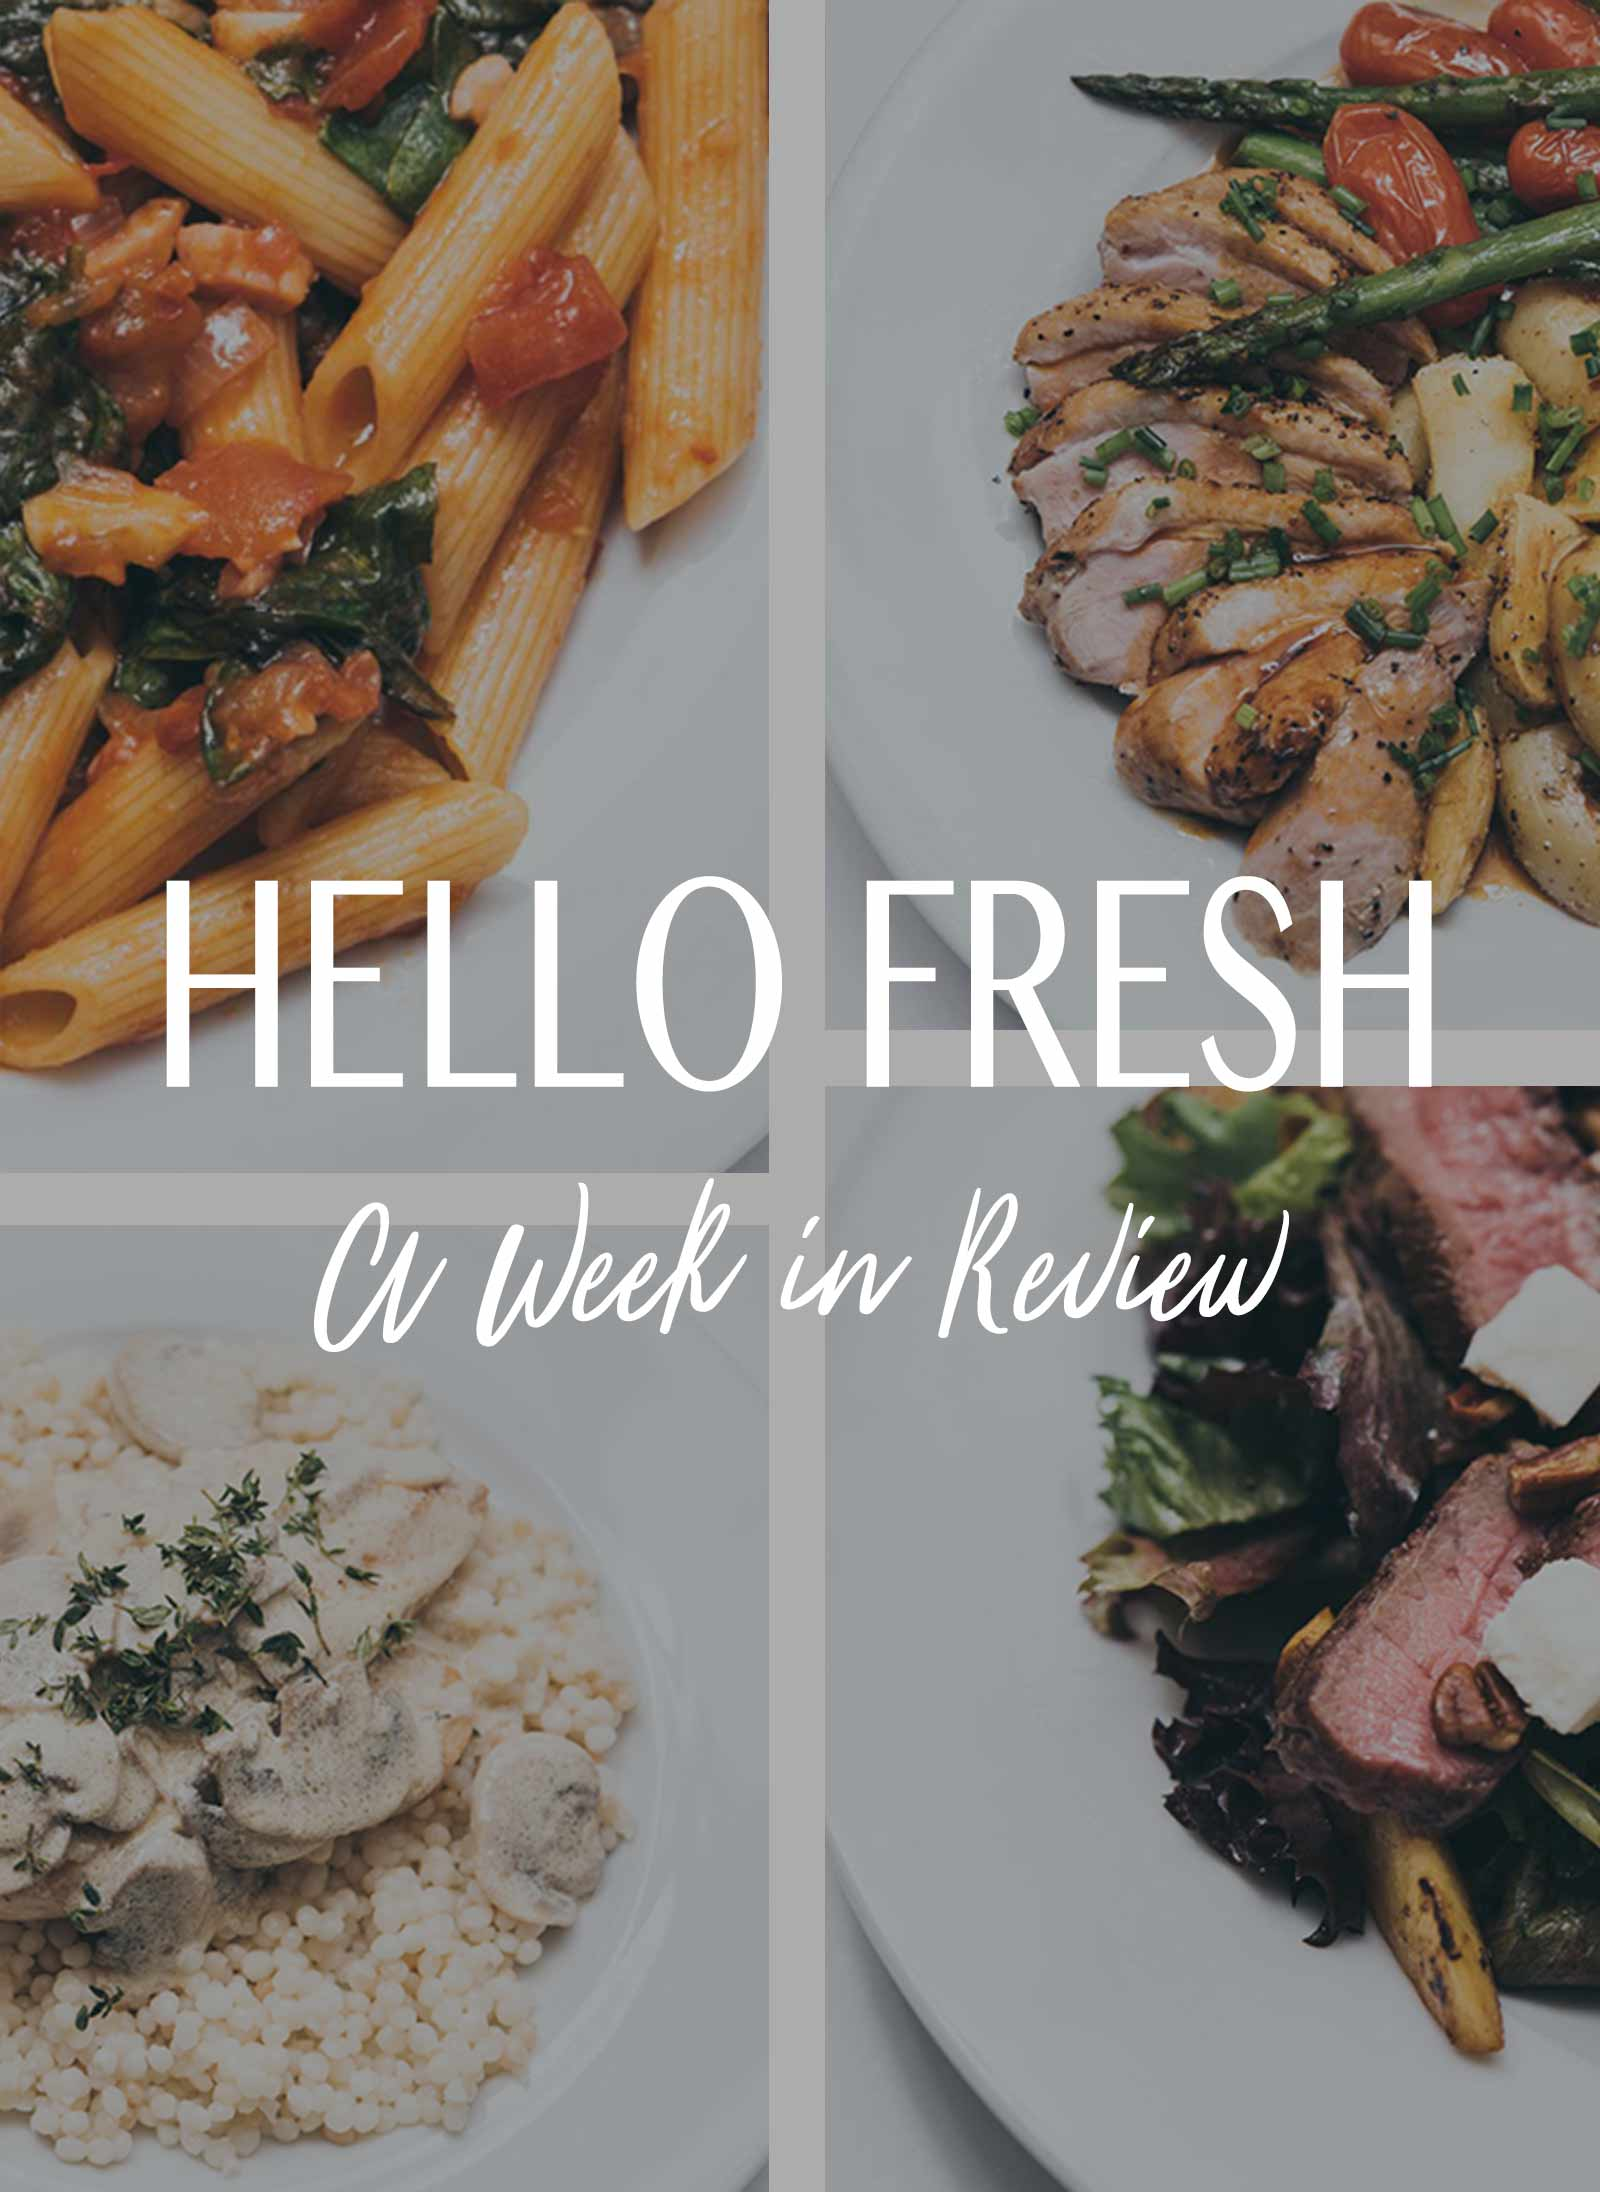 Under 700 Meal Kit Delivery Service Hellofresh